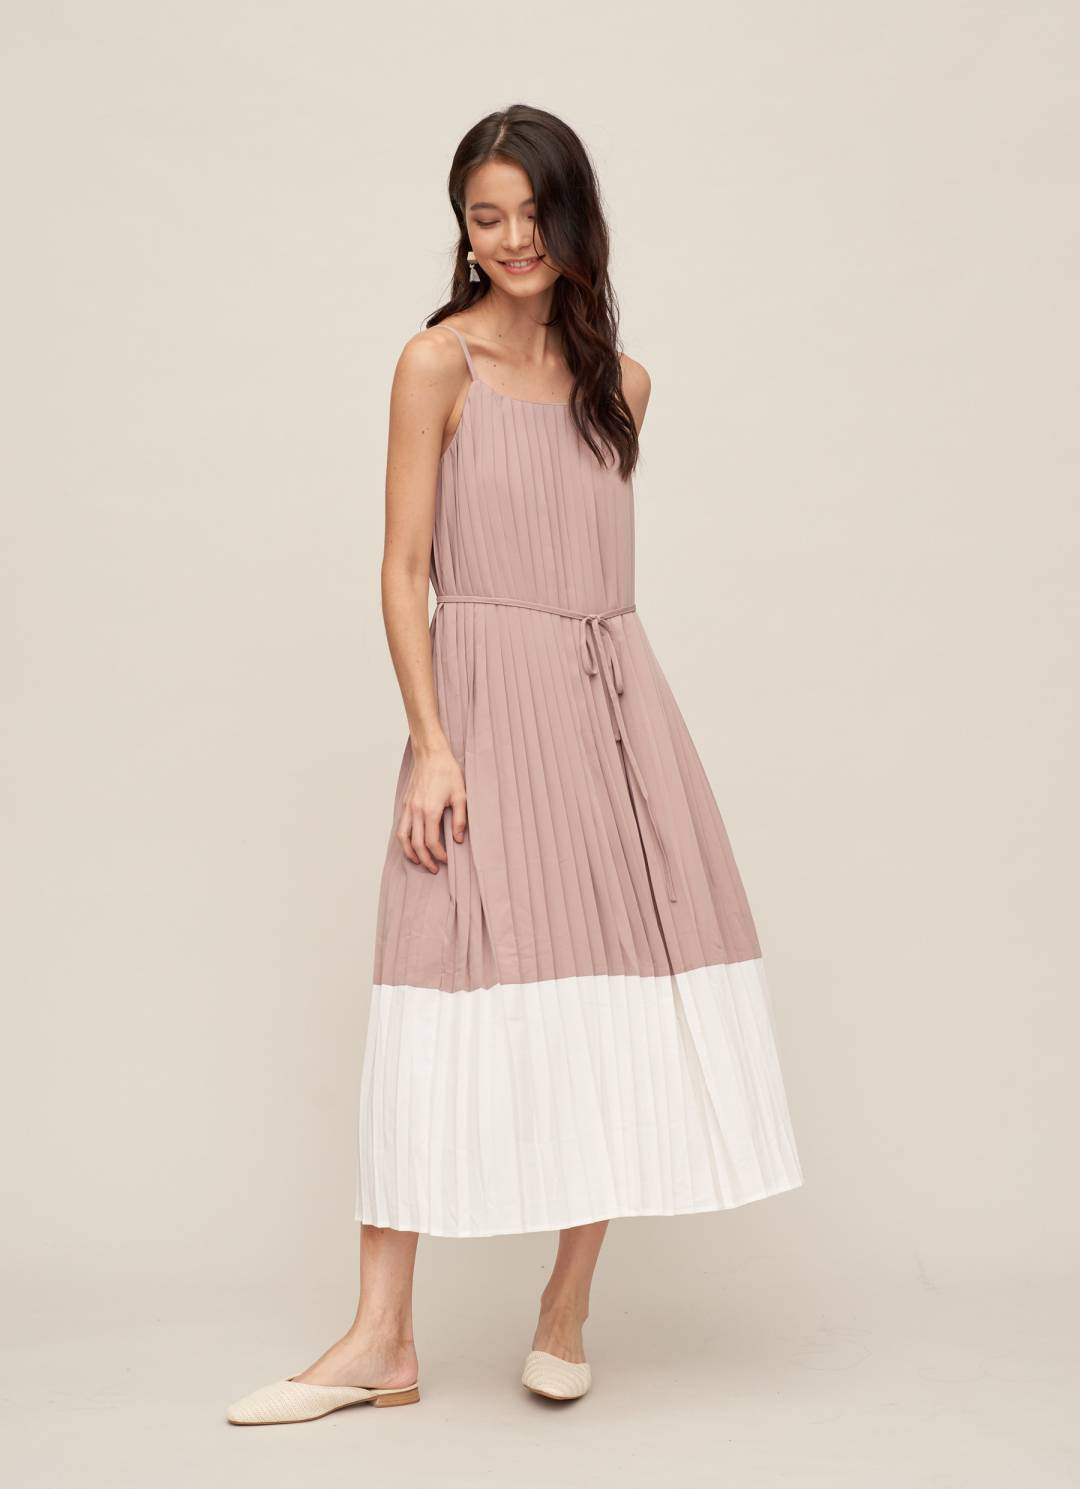 MANDY Pleated Dress in Mauve Pink